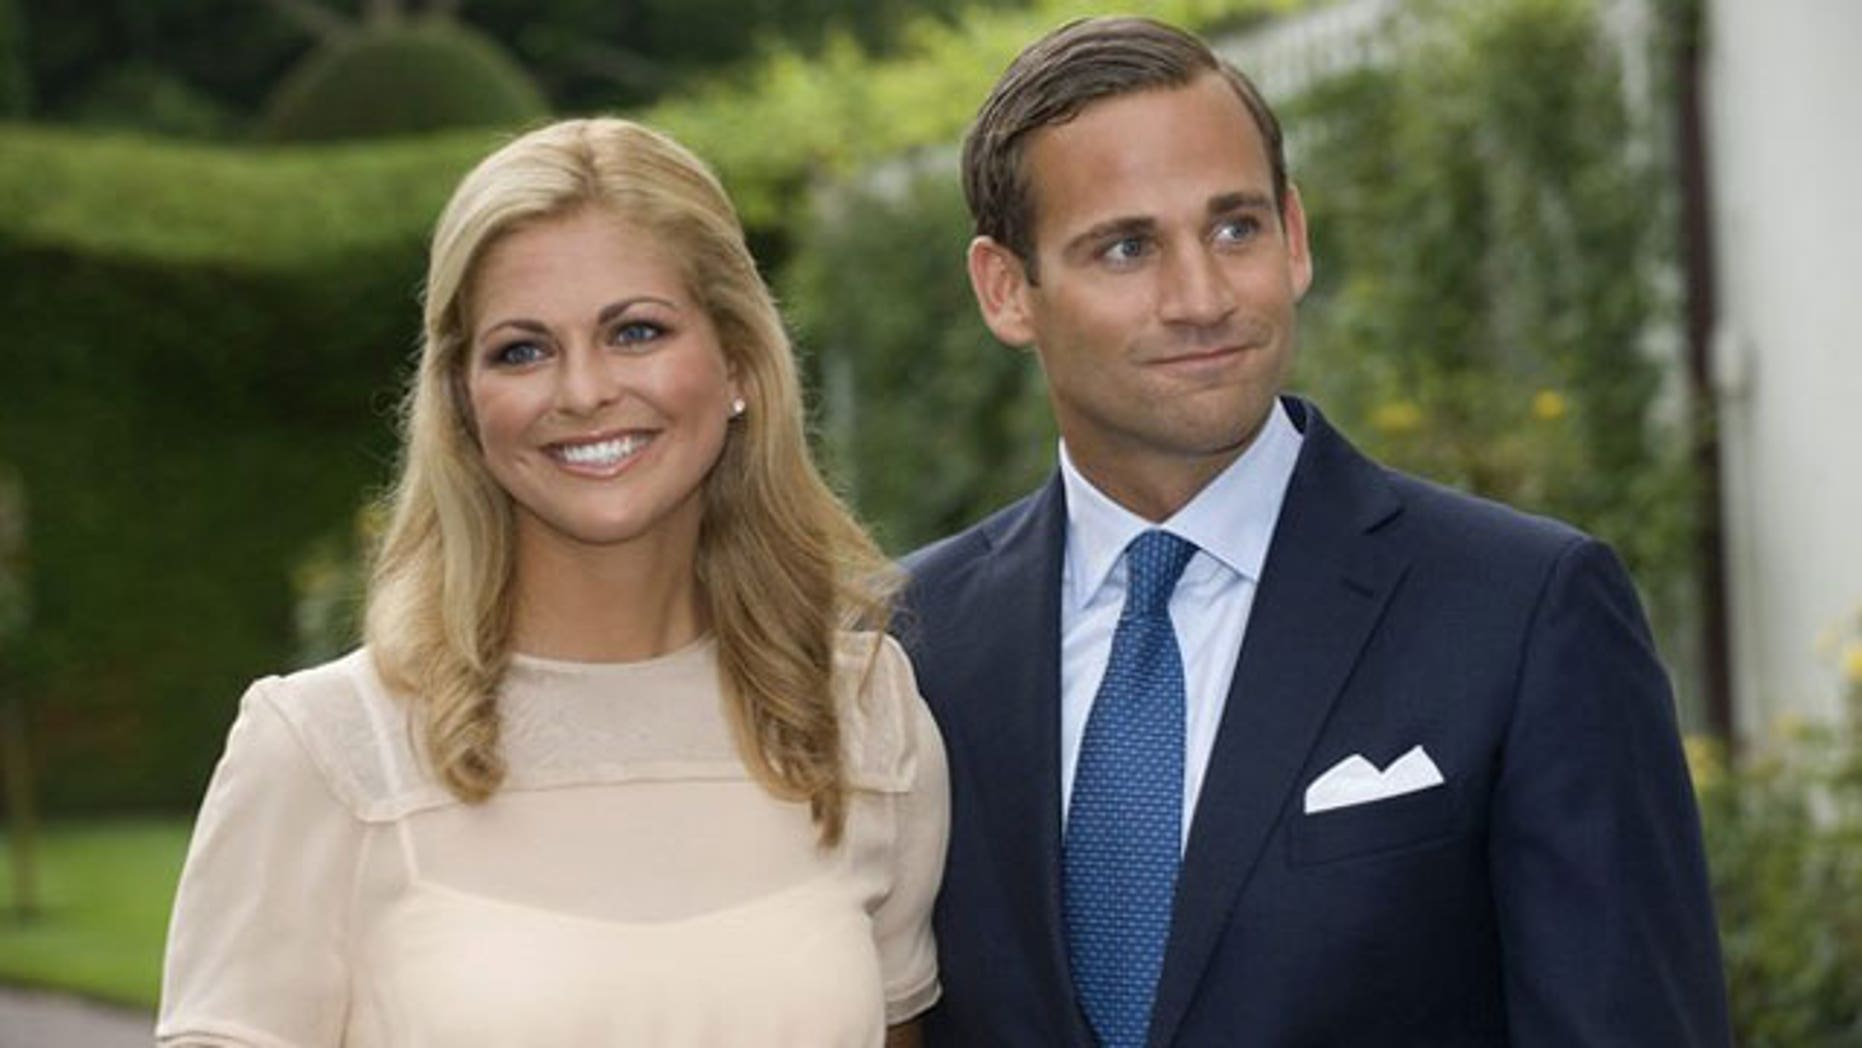 File photo of Princess Madeleine of Sweden and her fiance Jonas Bergstrom during a news conference following their engagement at the Soliden palace on the island of Oland August 11, 2009. Princess Madeleine and her fiance Jonas Bergstrom have broken their engagement the Swedish Royal Court announced on their web site April 24, 2010 (Reuters).